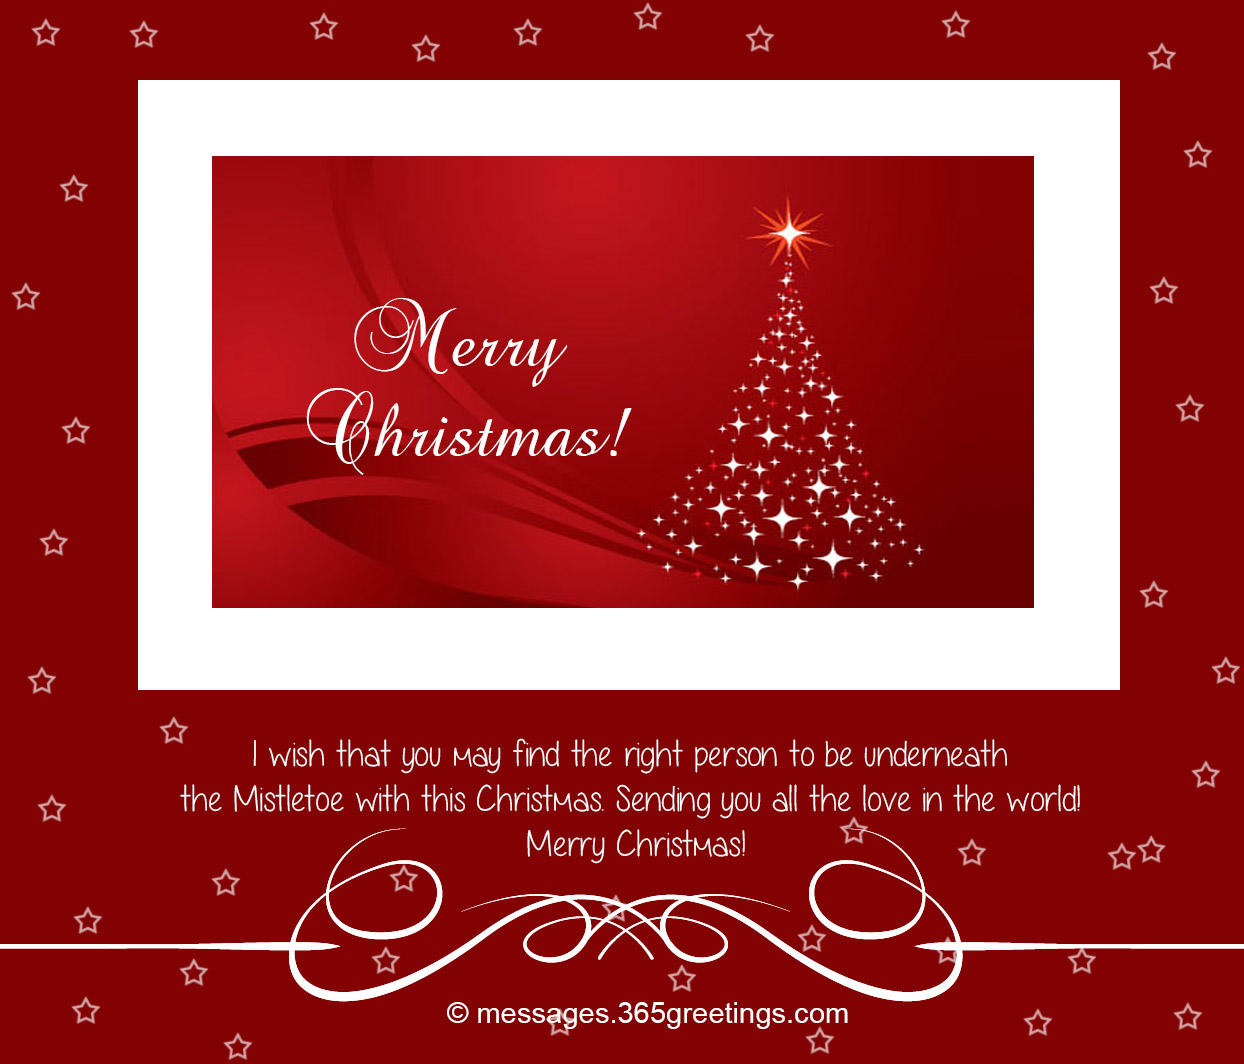 Best Christmas Card Sayings And Greetings 365greetings